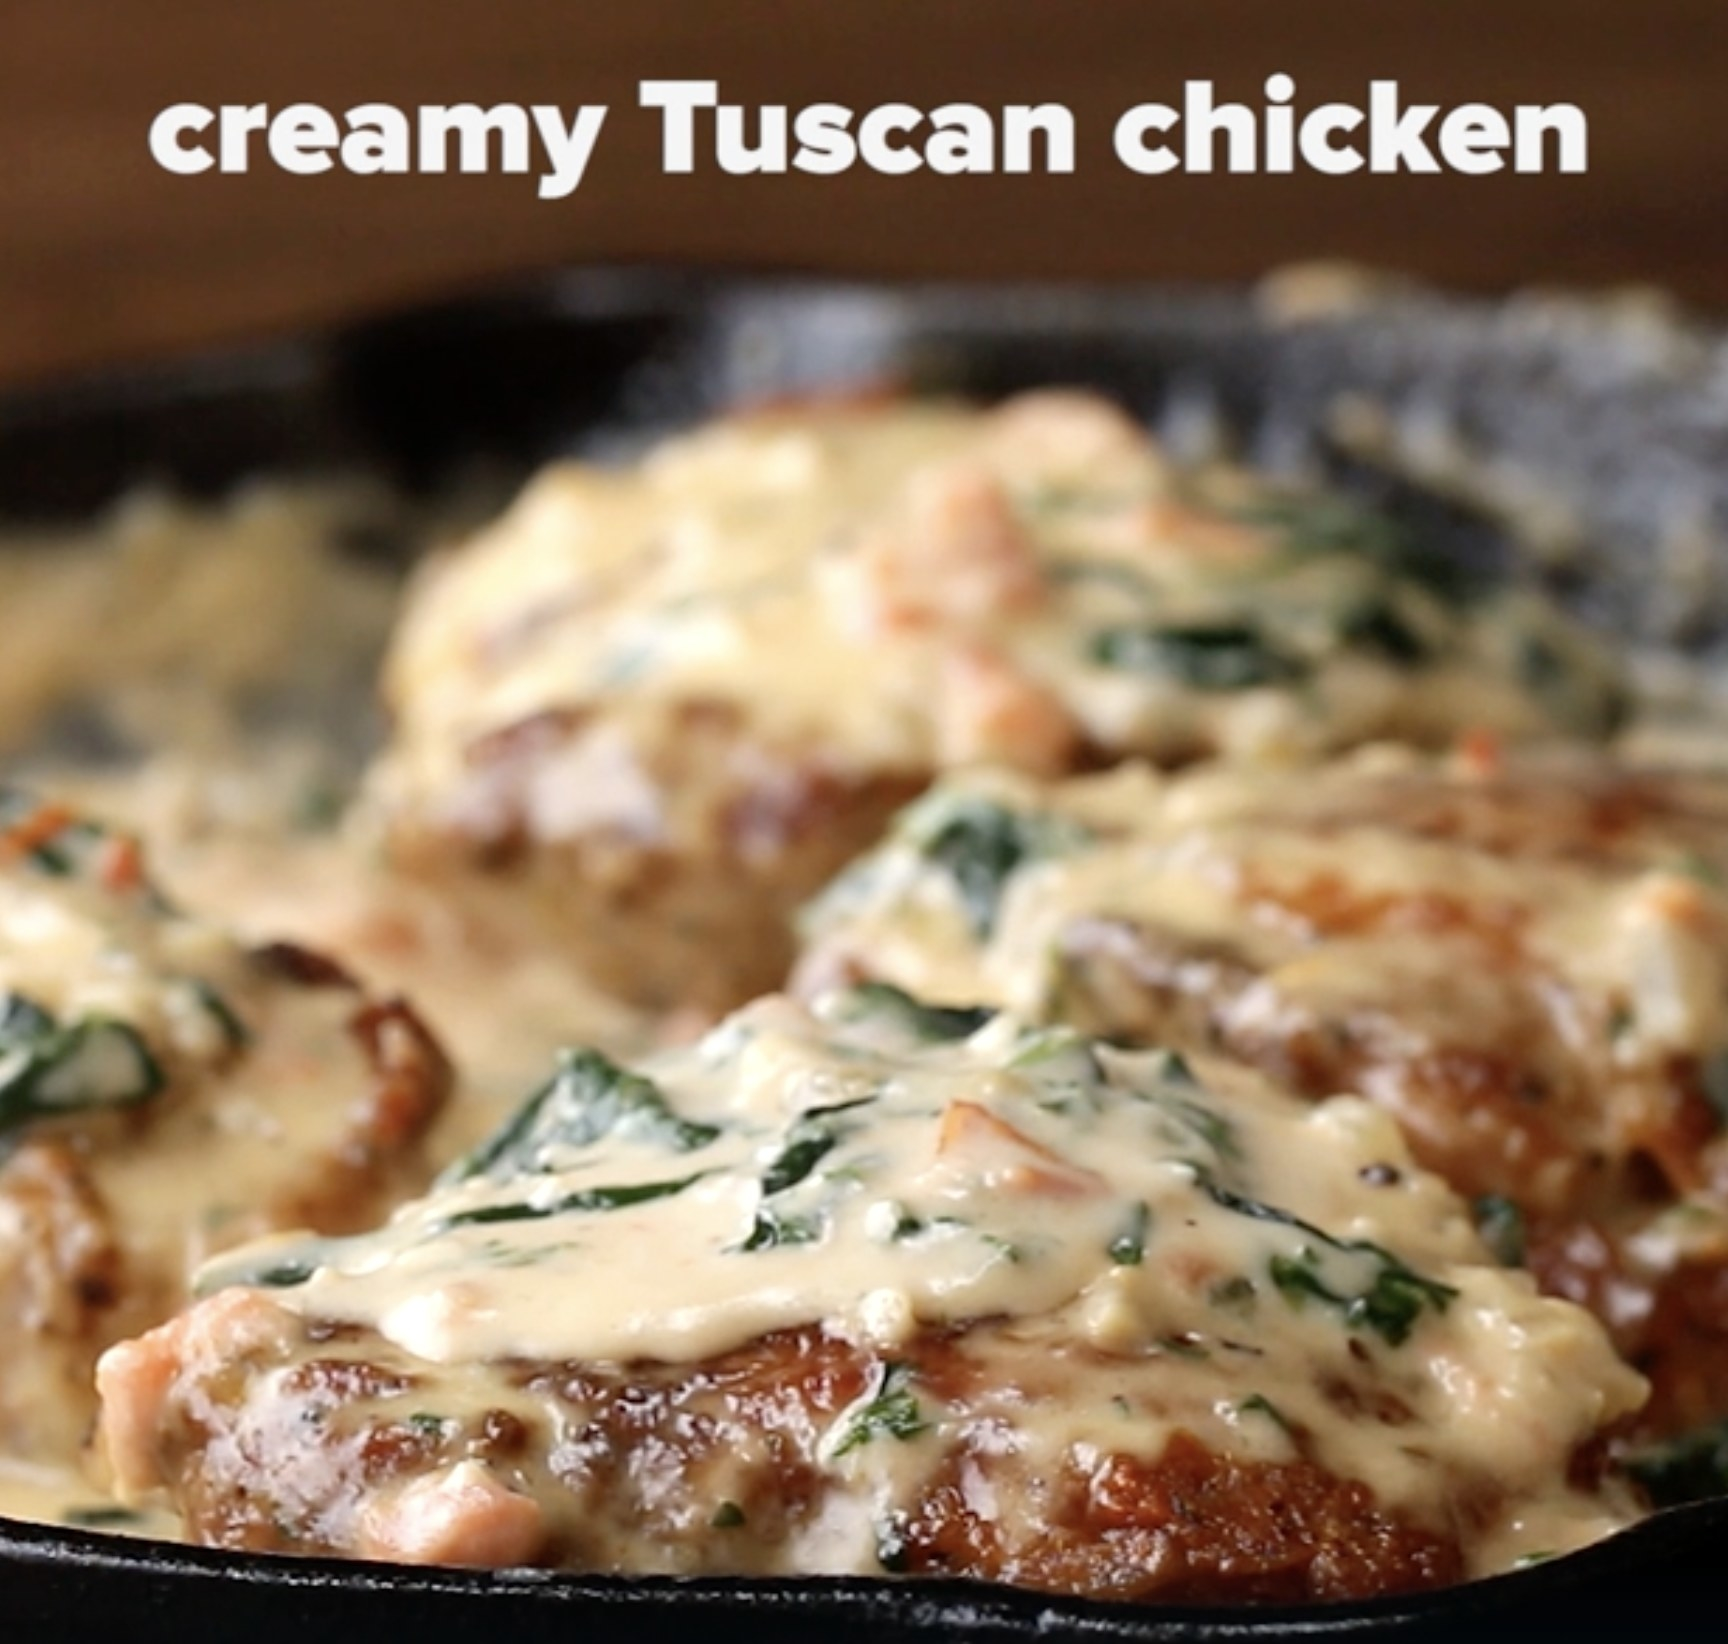 A plate of creamy Tuscan chicken